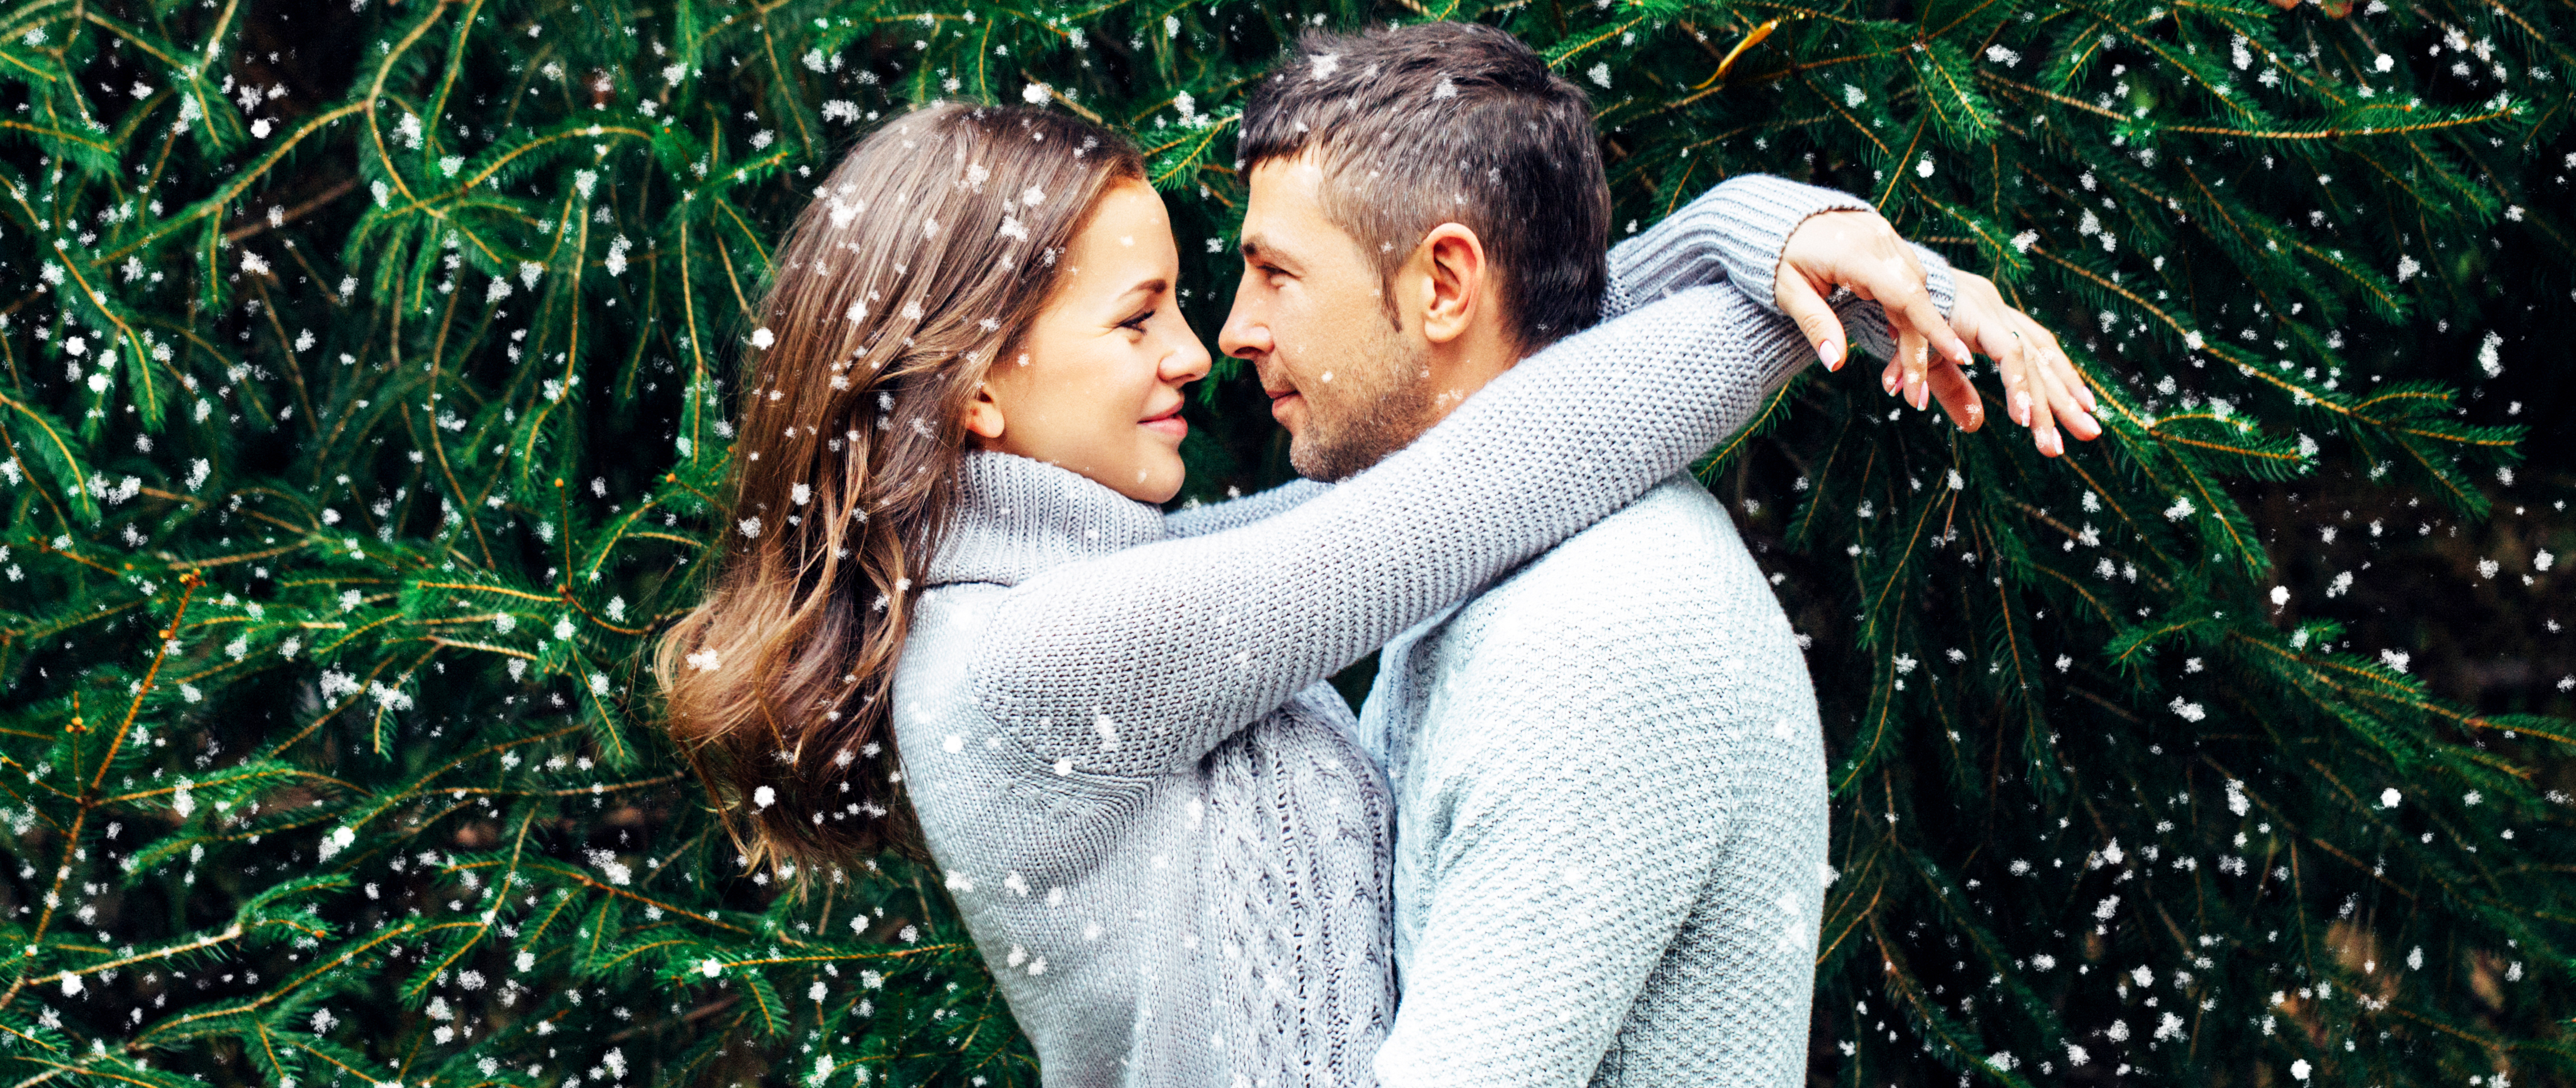 Two people in love in front of pine trees in the a light snow.